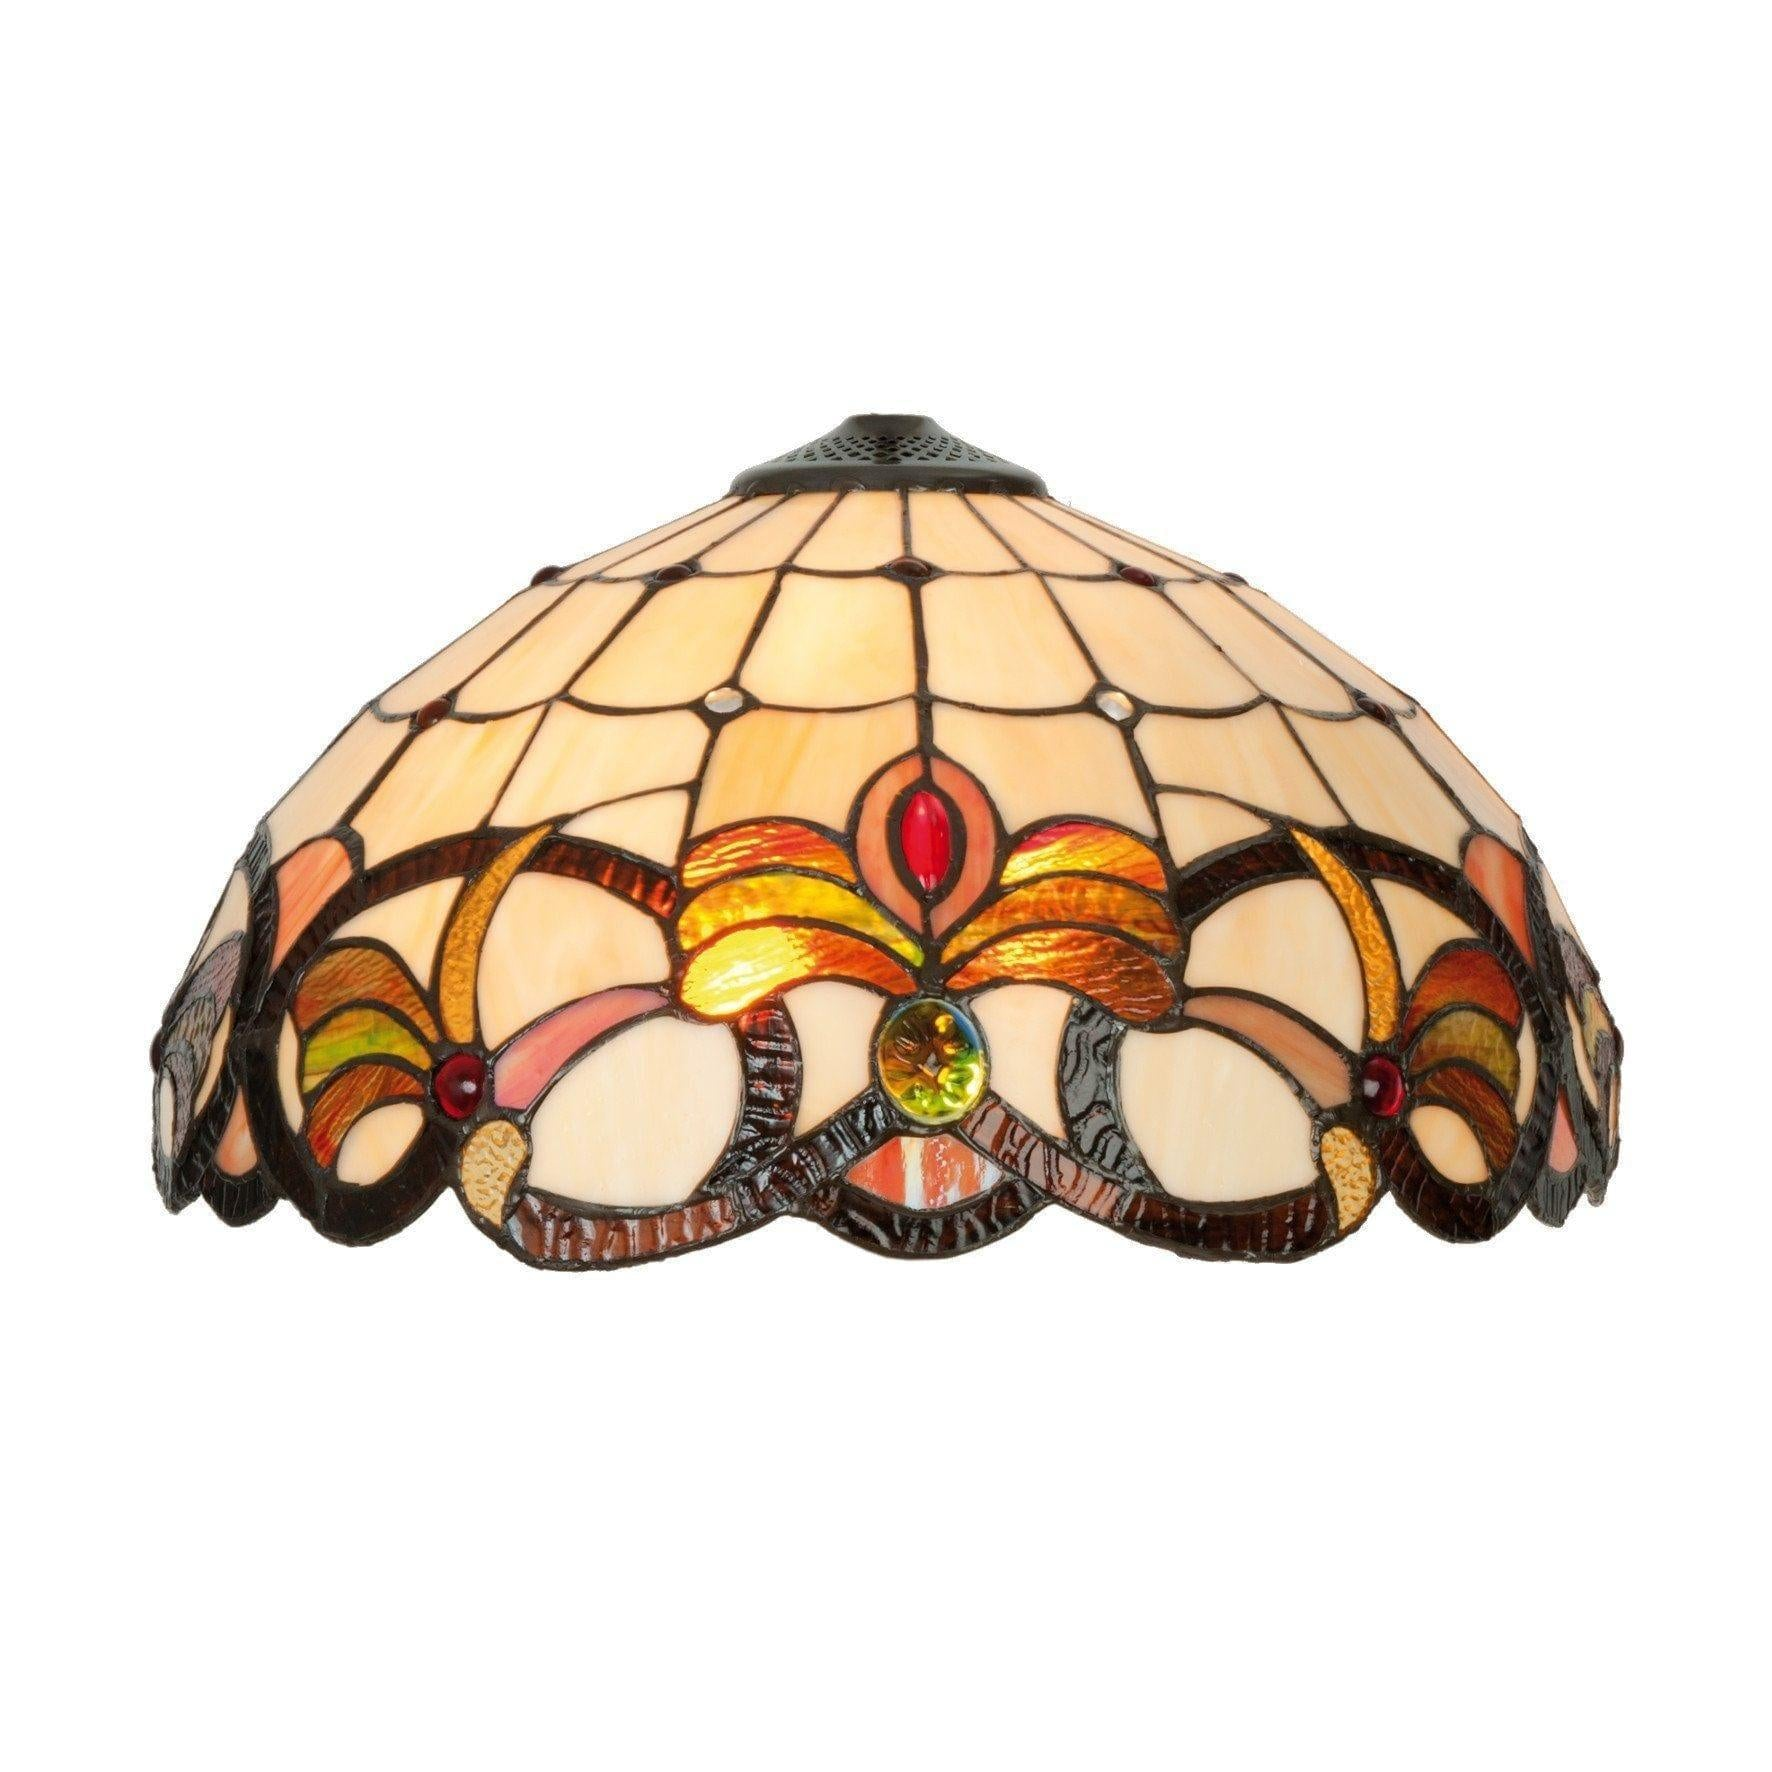 Tiffany Replacement Table Lamp Shades & Bases - Ipswich Tiffany Replacement Table Lamp Shade